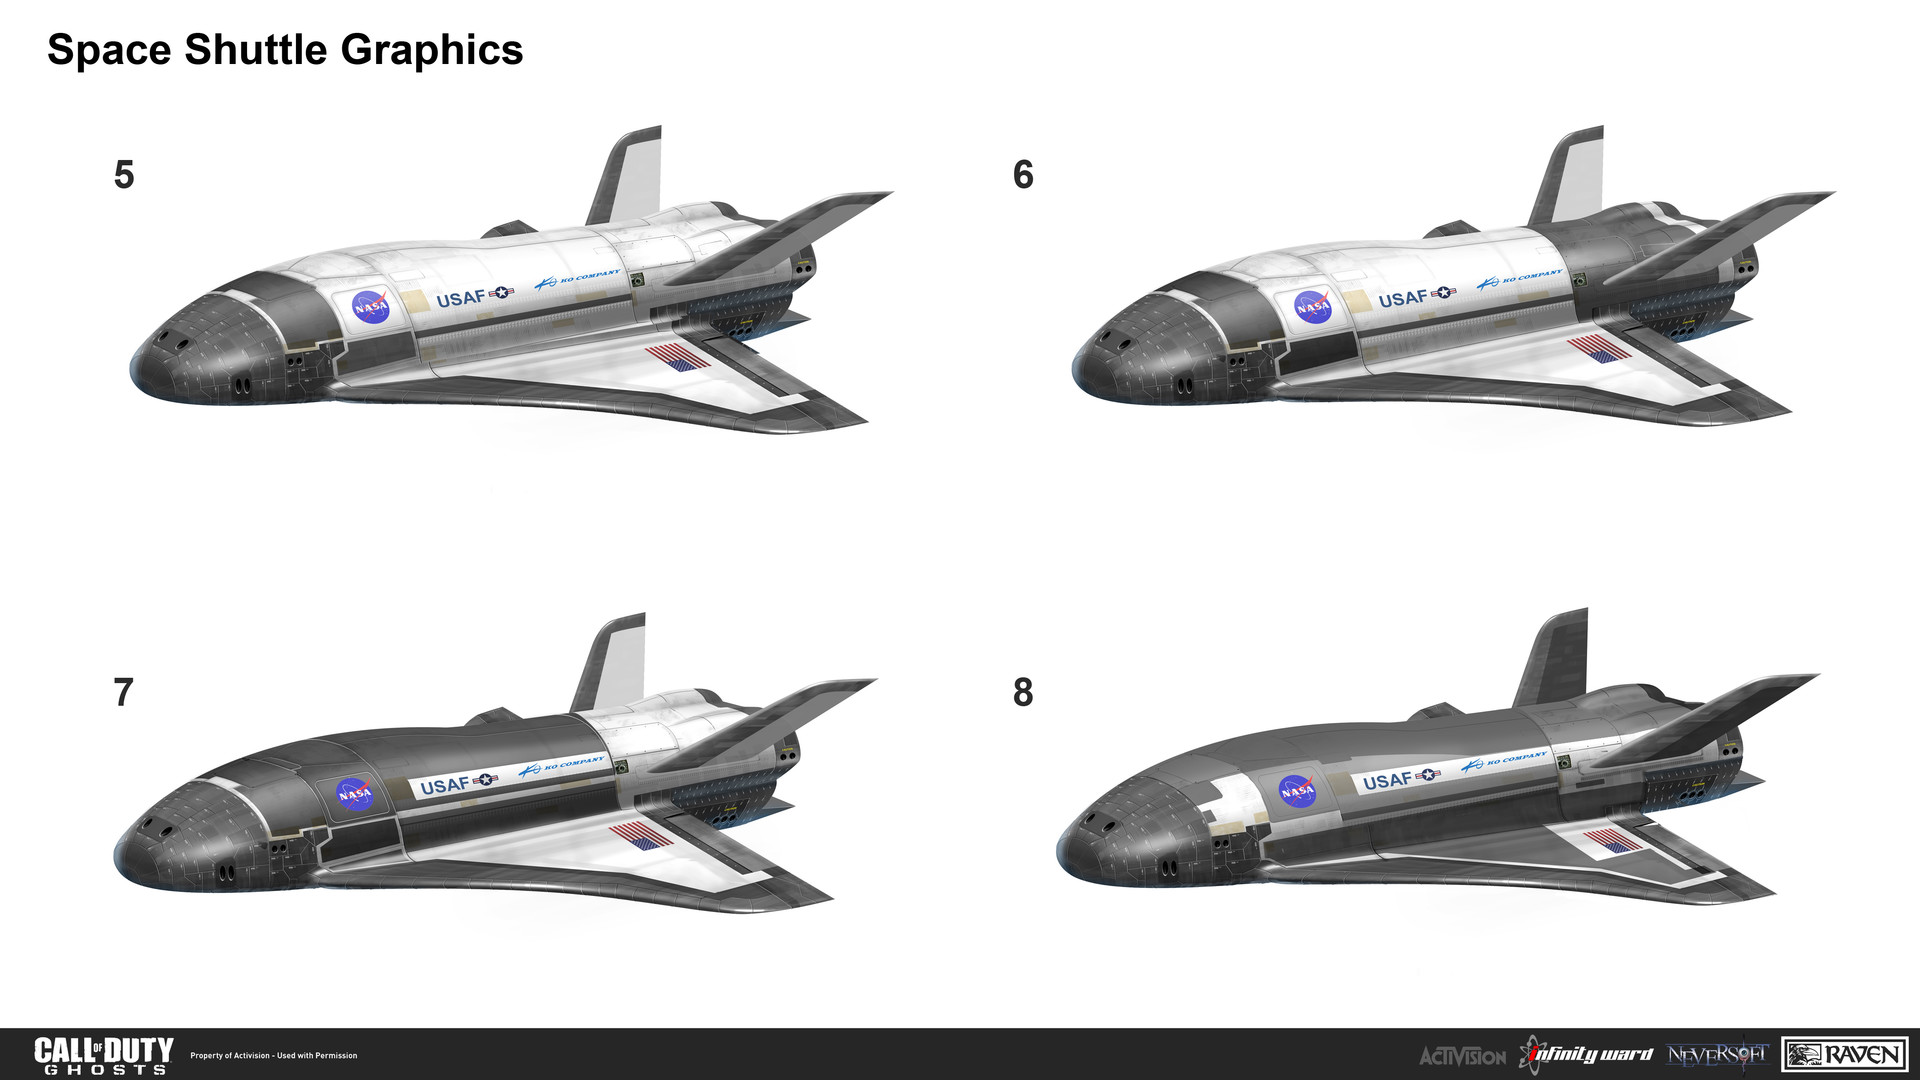 Simon ko sko 03 22 13 space2 shuttle graphics2